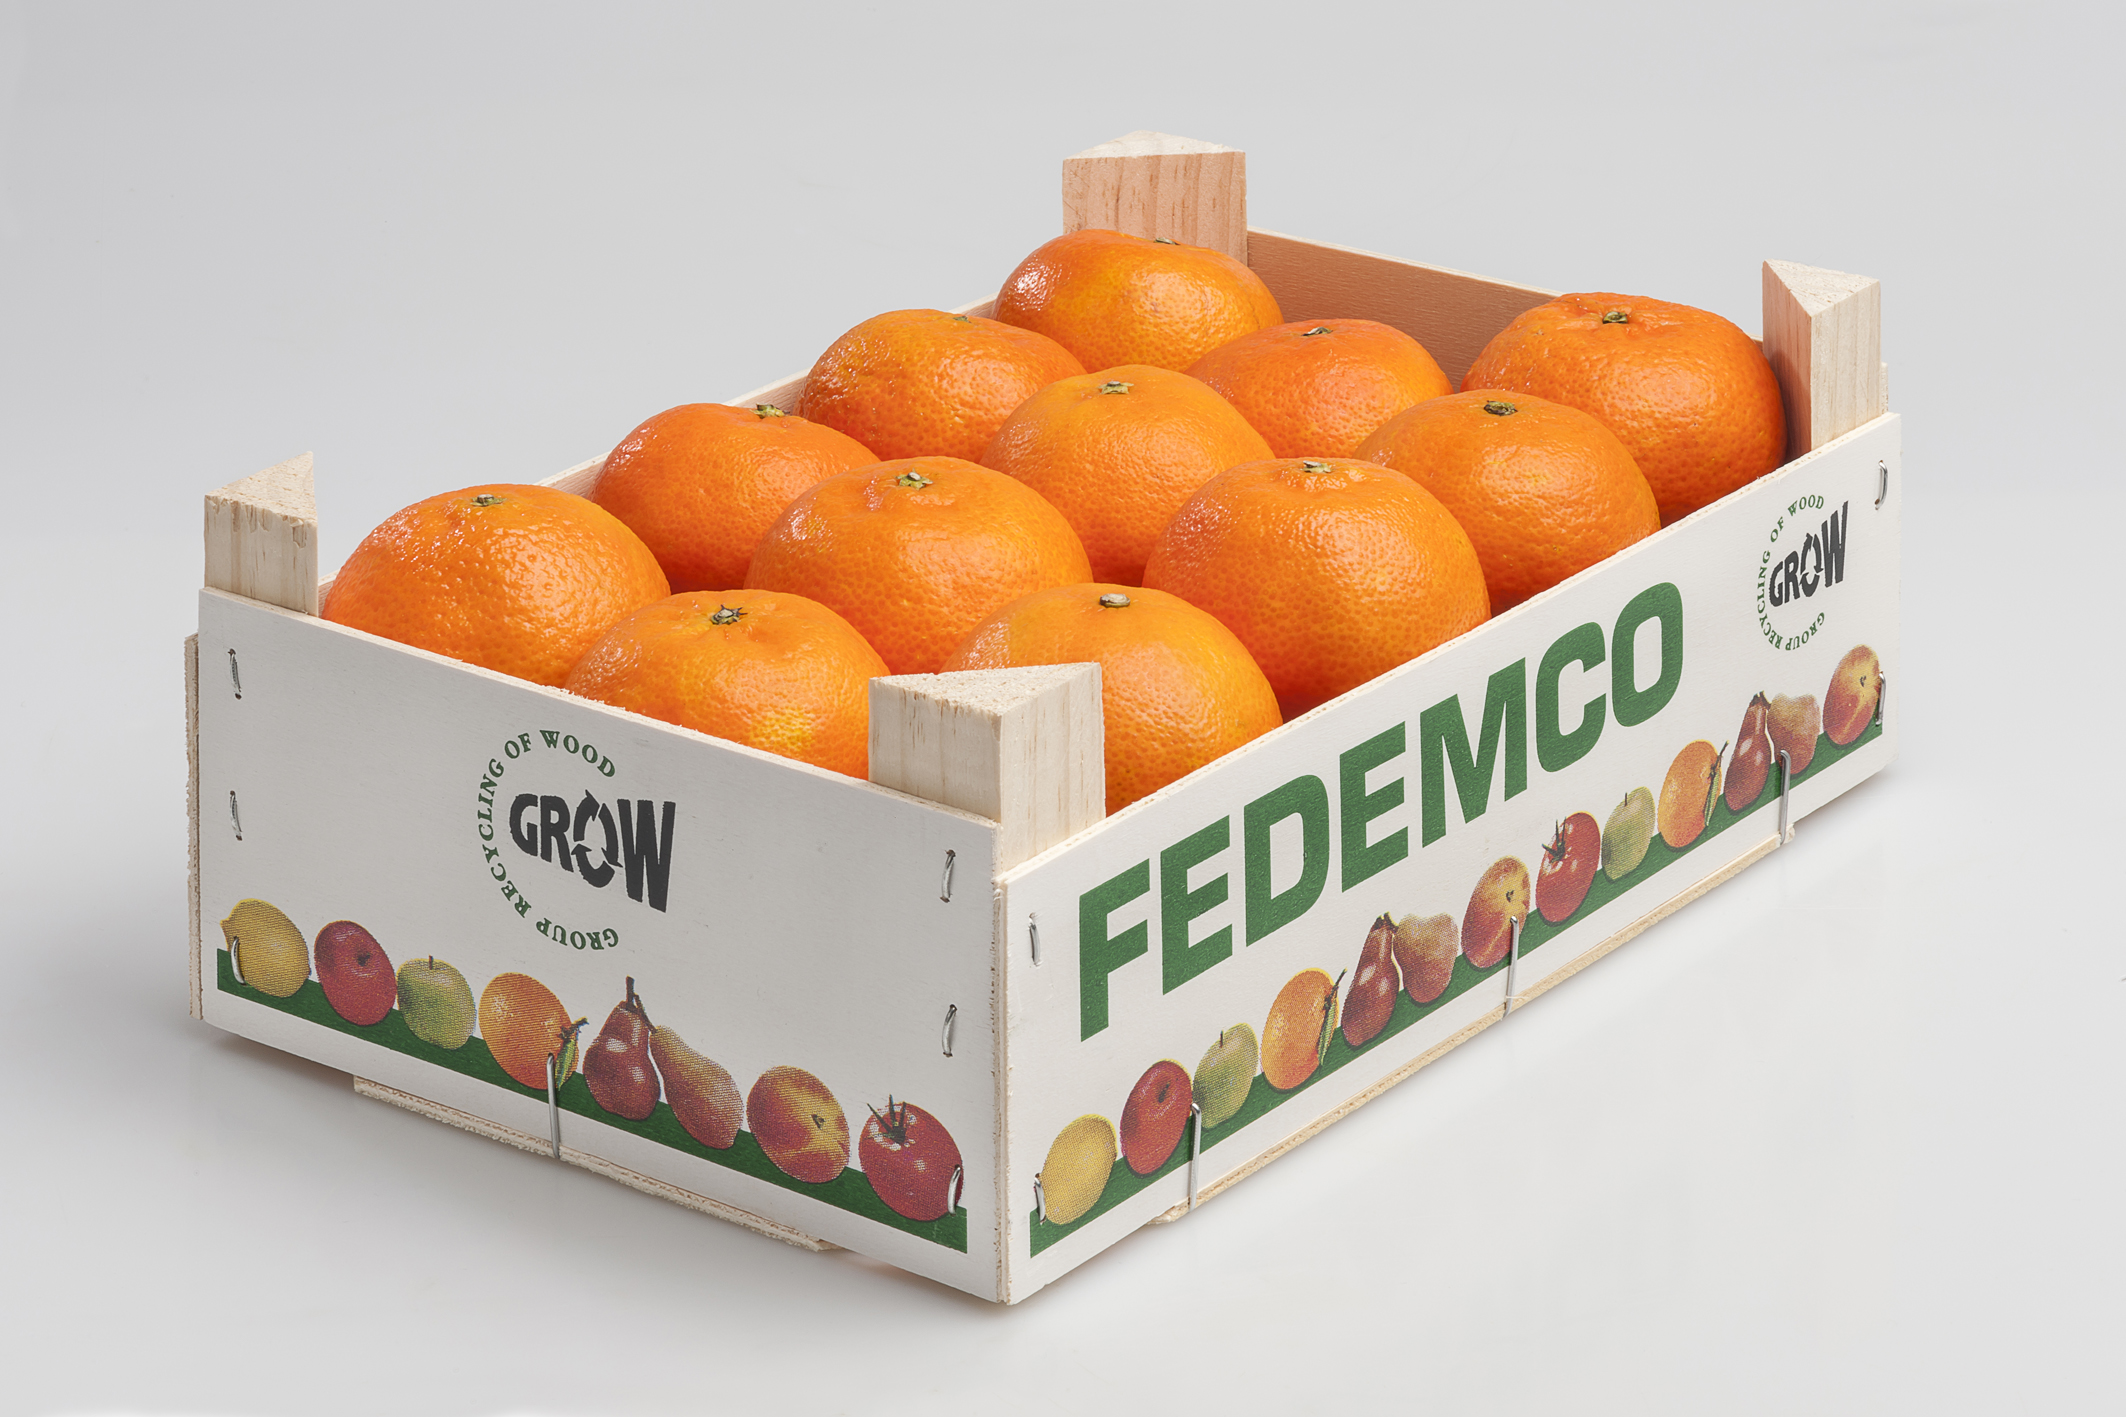 2% rise in wooden packaging production in Spain last season, according to FEDEMCO